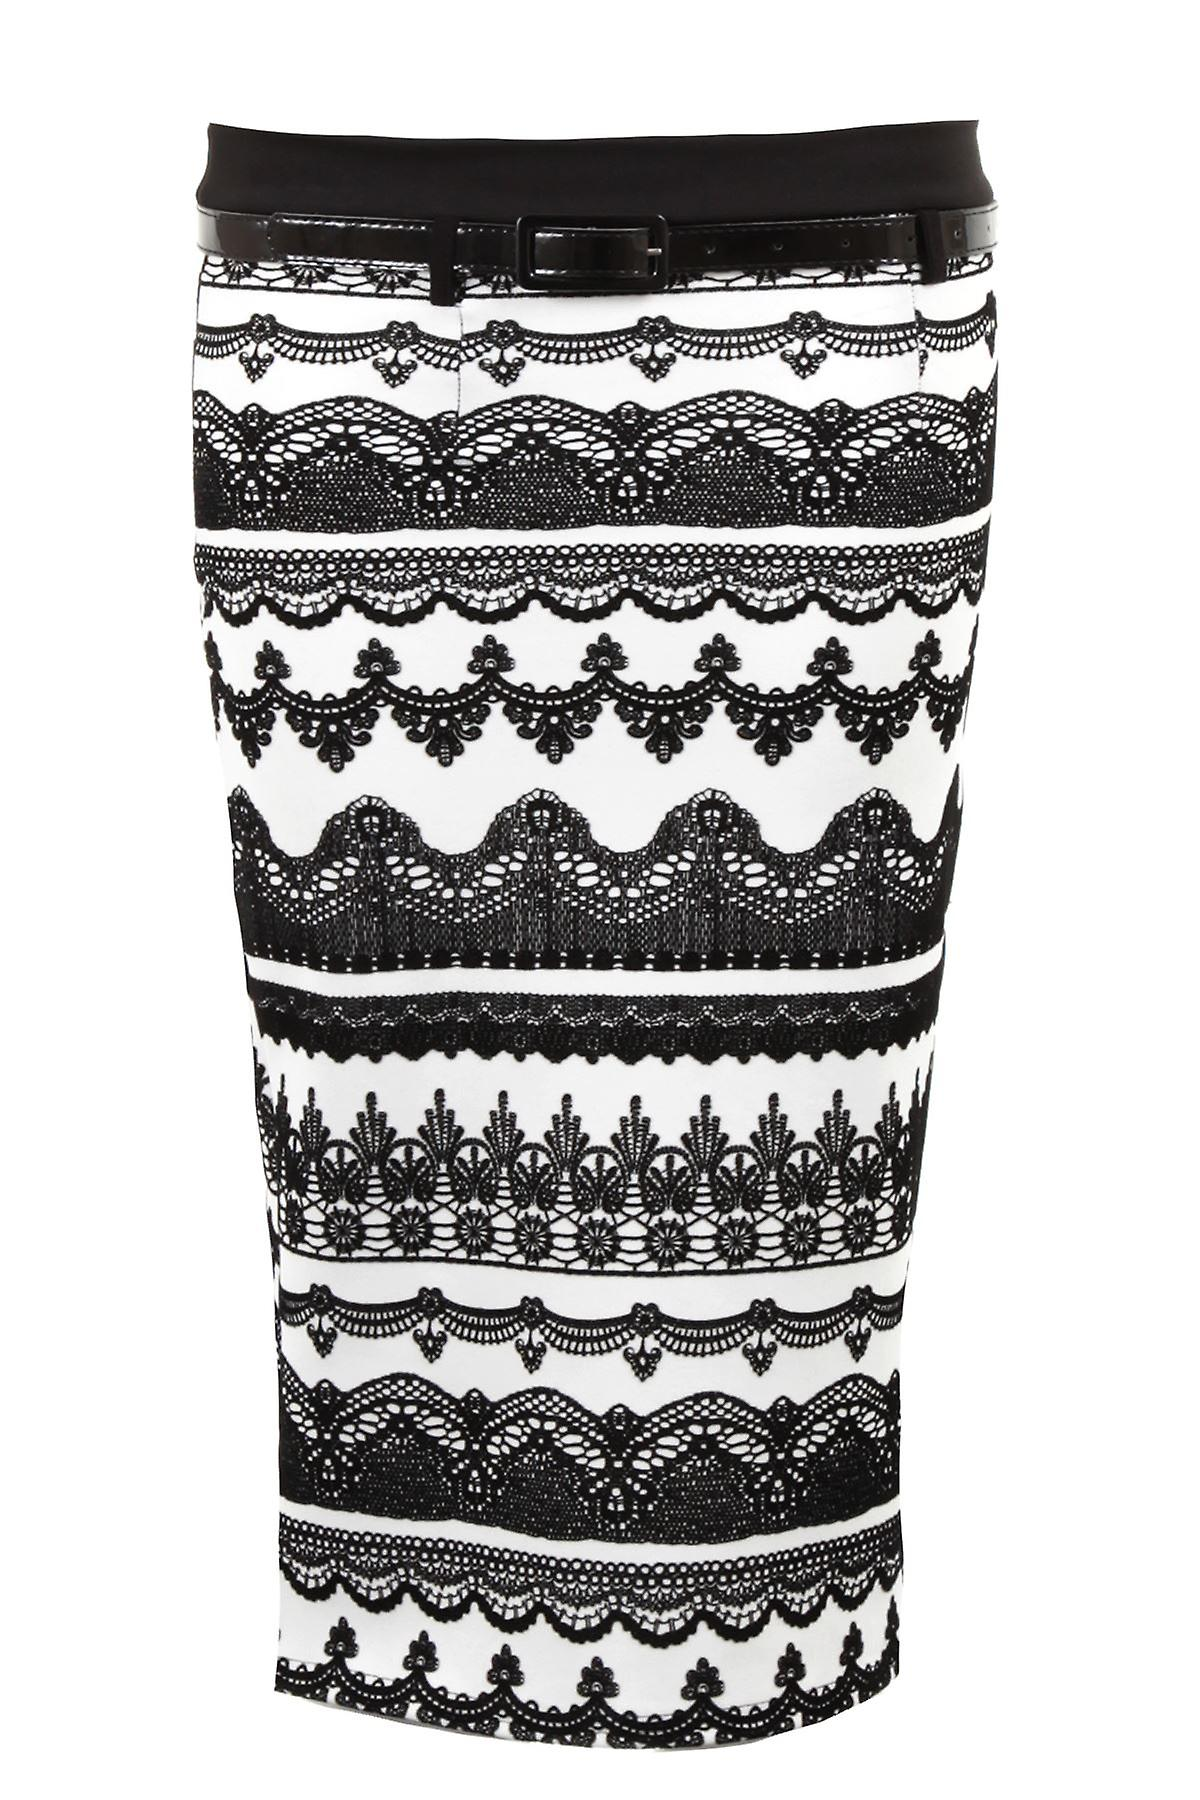 Ladies Flock Aztec Print Belted Pleated Black White Pencil Formal Women's Skirt